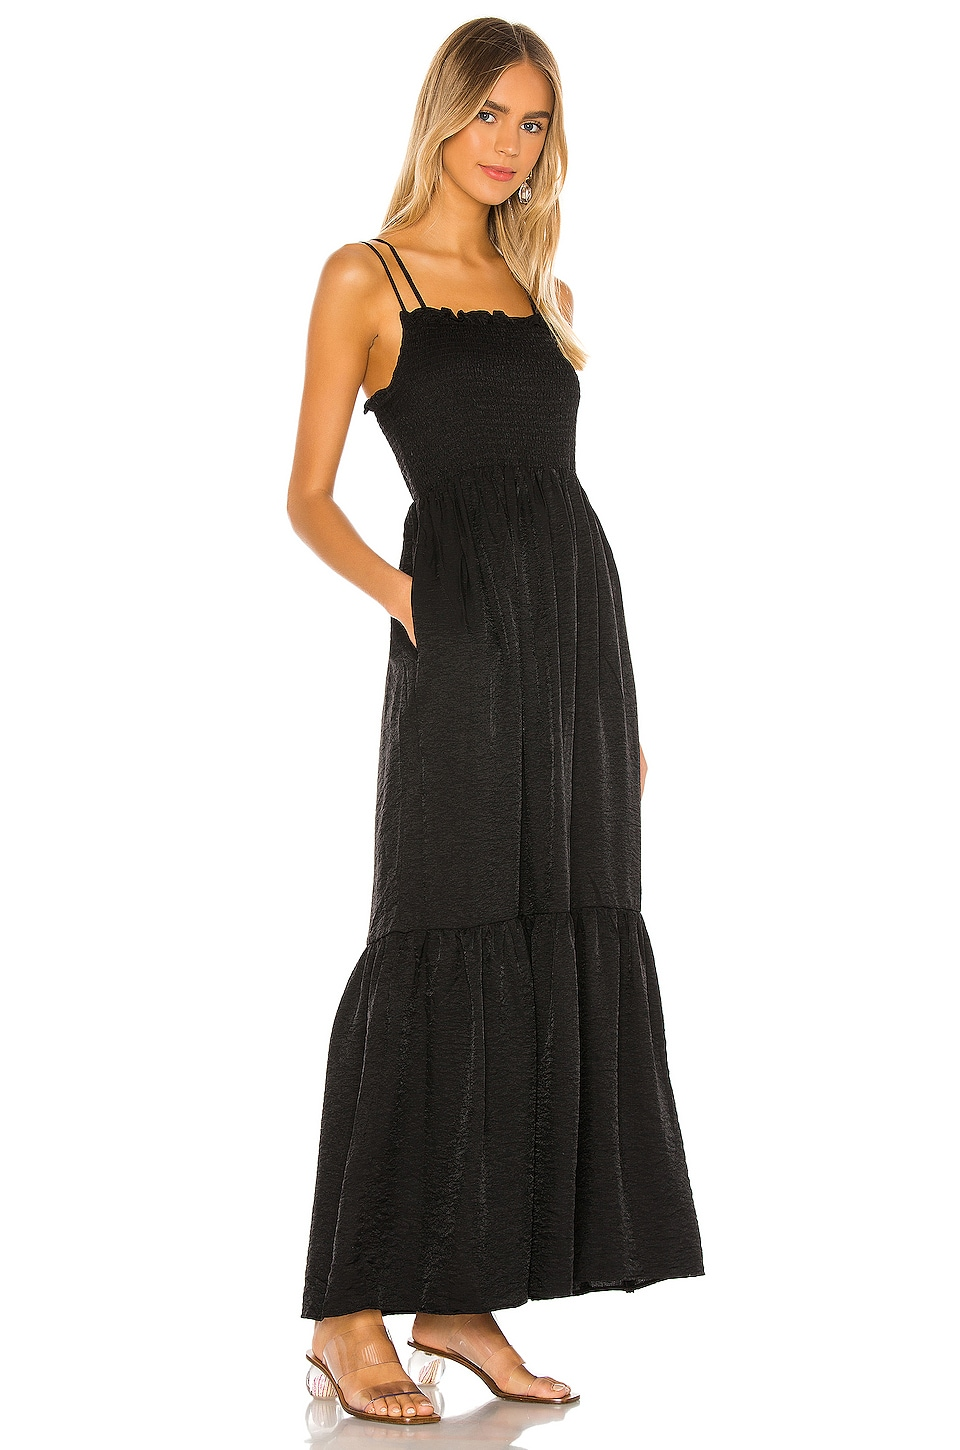 Blaque Maxi Dress, view 2, click to view large image.